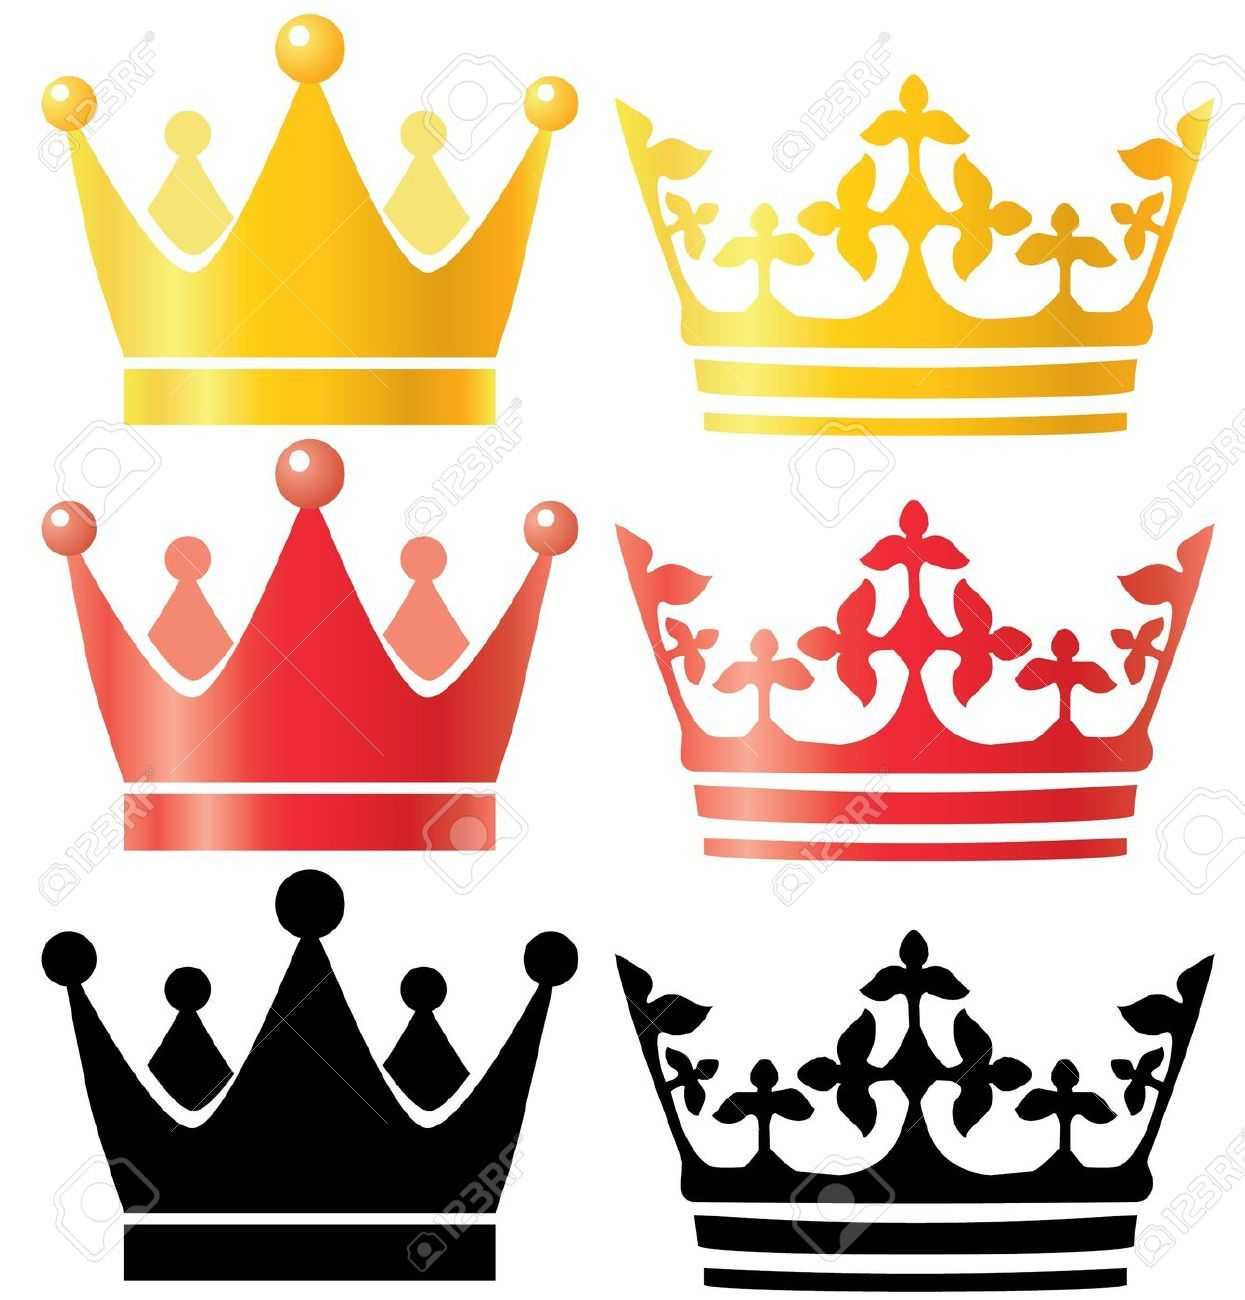 1245x1300 King Crown Clipart Free Download Clip Art